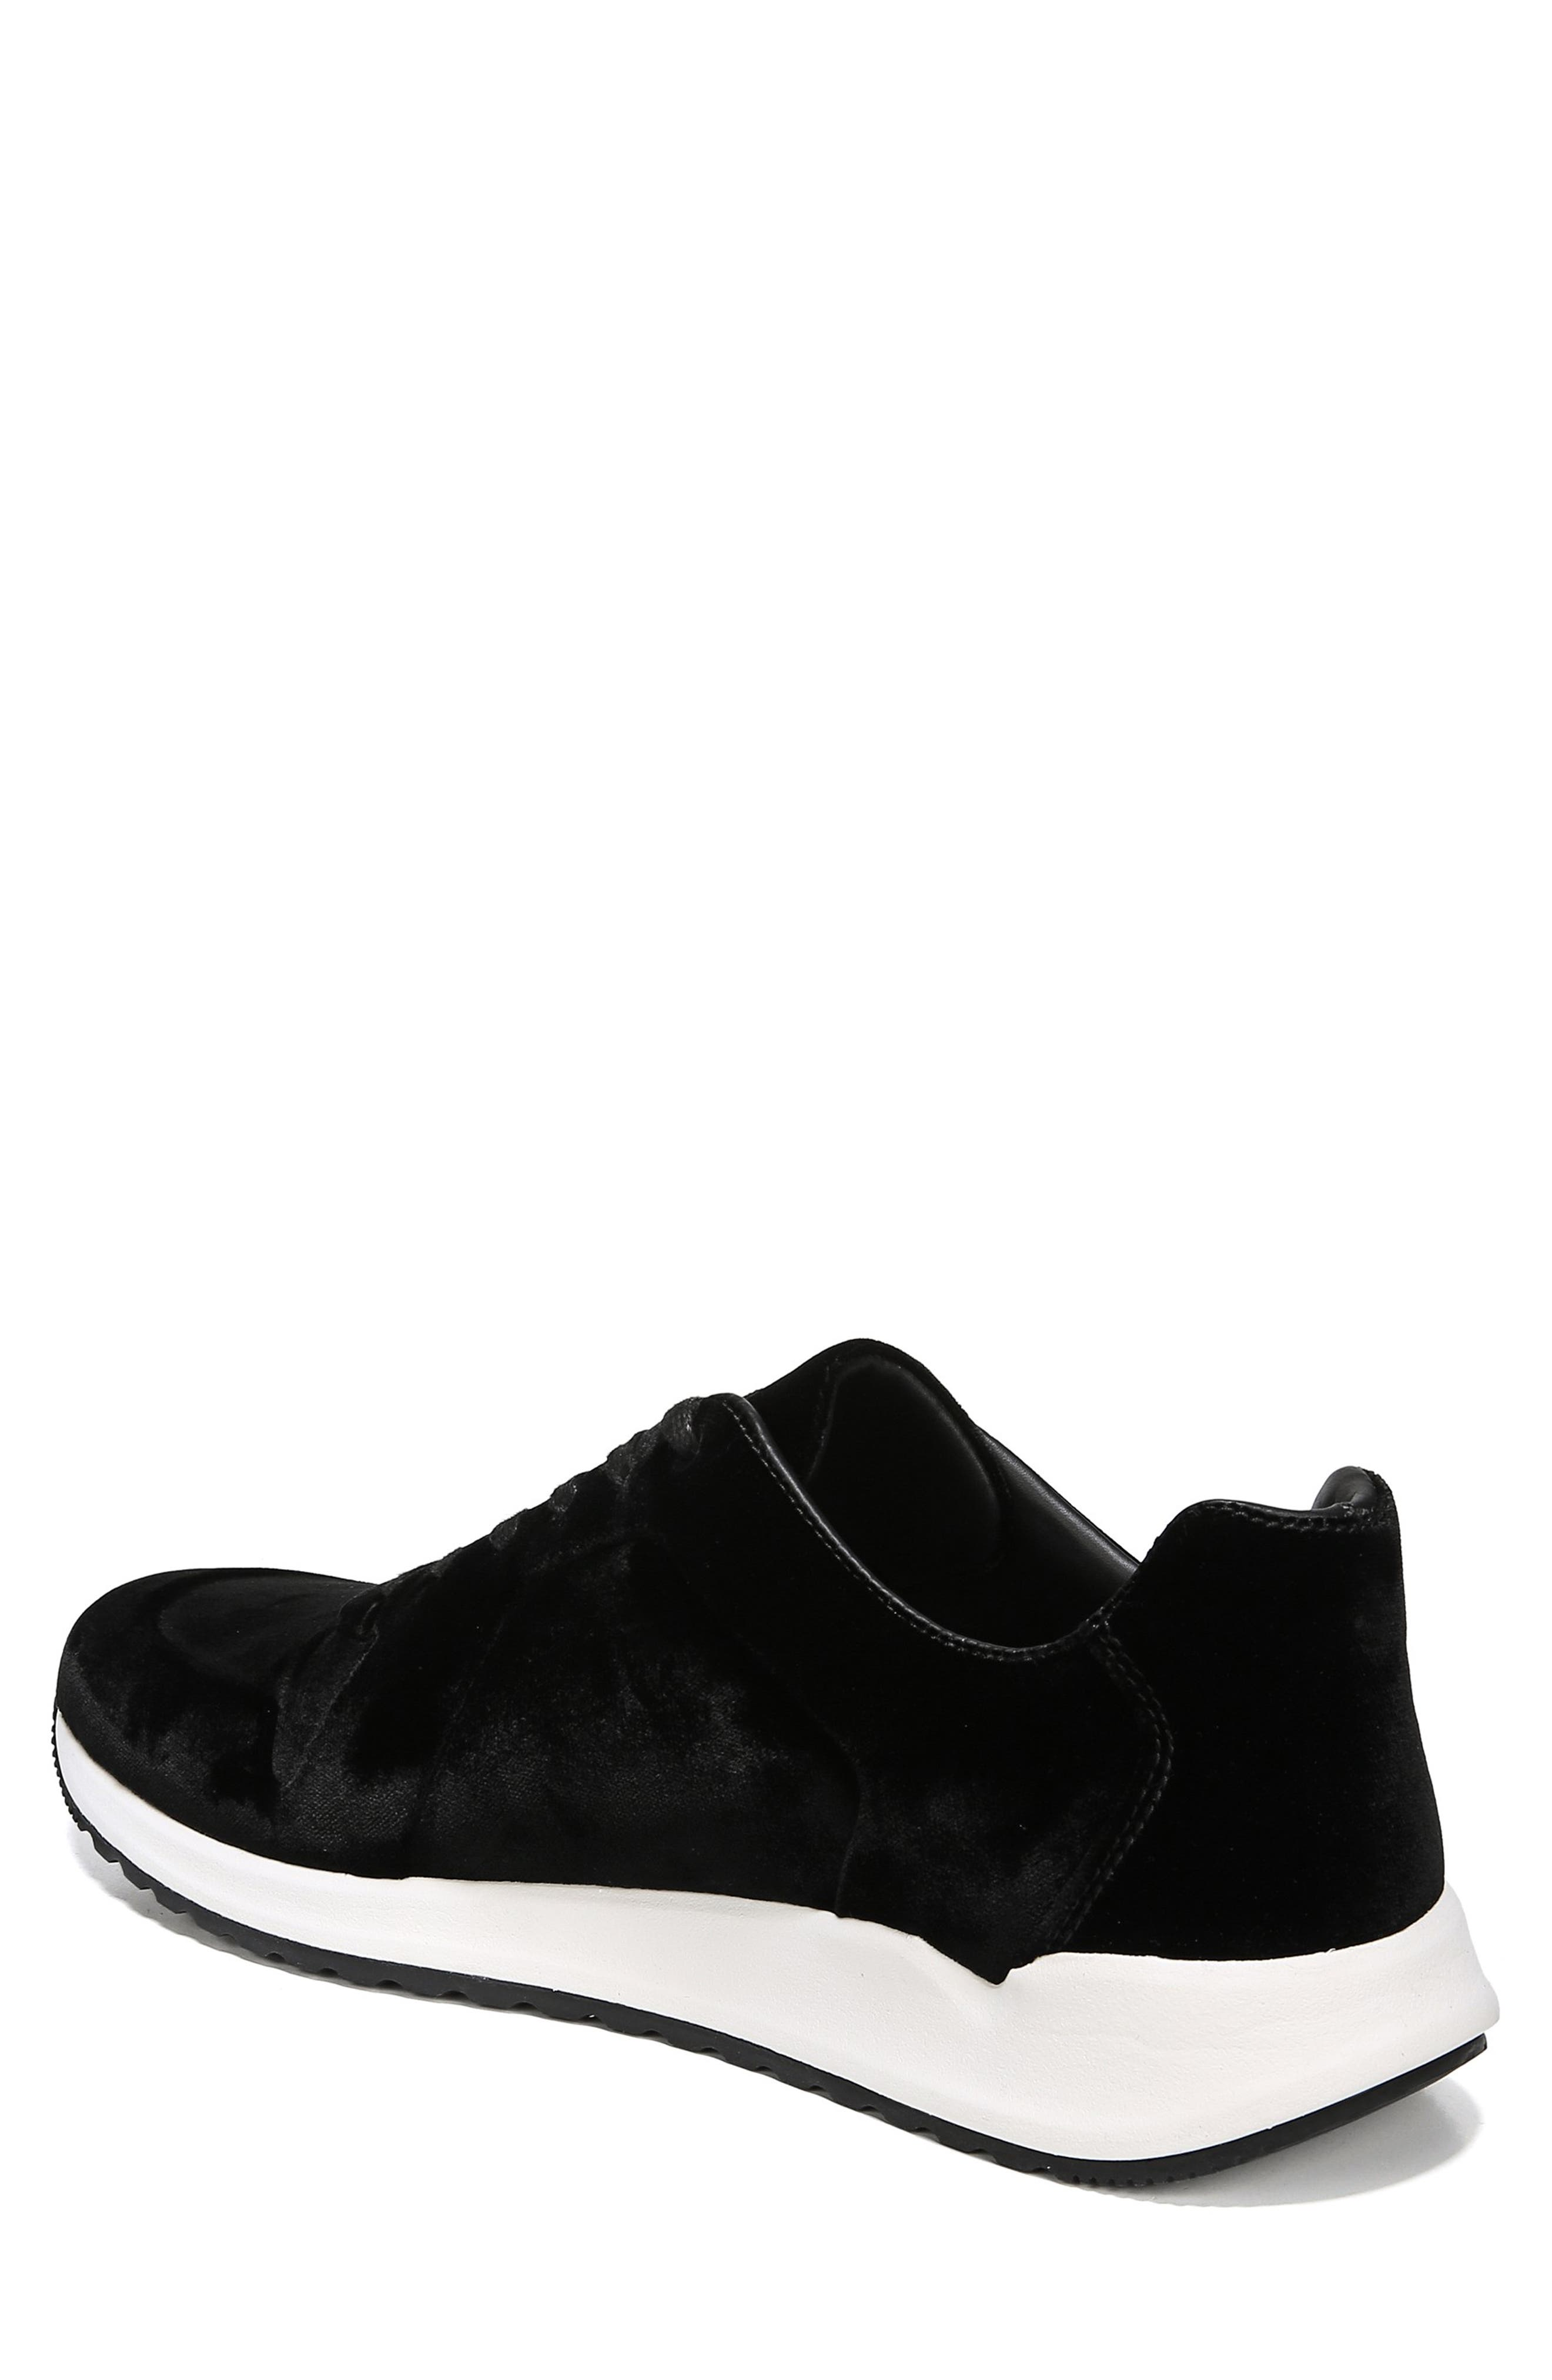 Garret Sneaker,                             Alternate thumbnail 2, color,                             BLACK